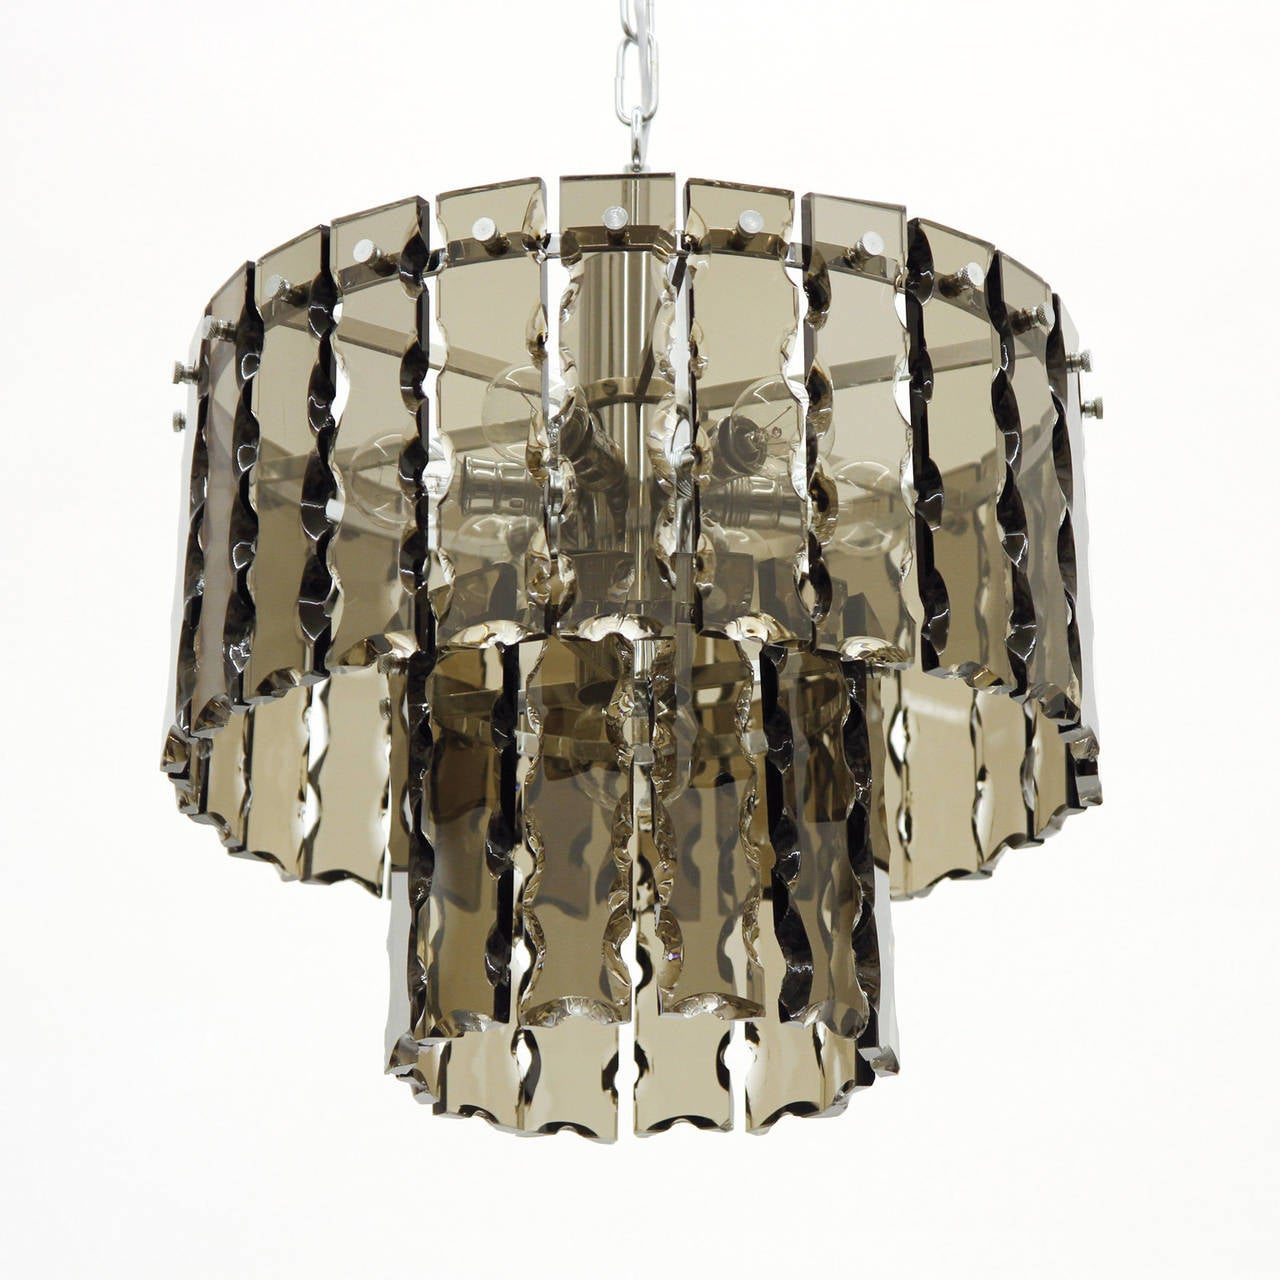 Fontana Arte Style Two-Tier Smoke Glass Chandelier 2